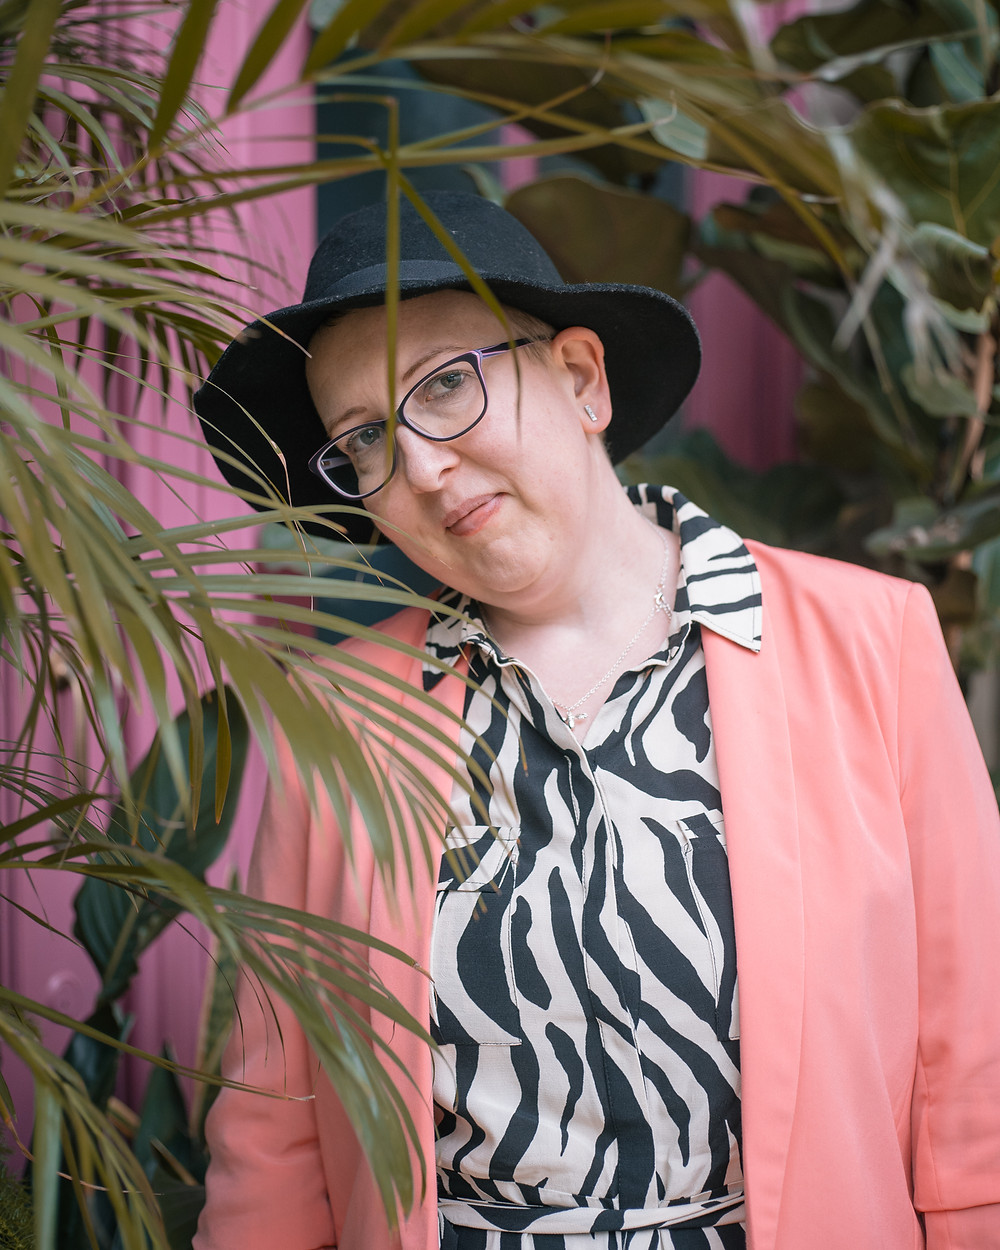 Sarah is hidden behind a plant, you can see her and she is wearing a zebra print dress, black fedora hat and a coral blazer